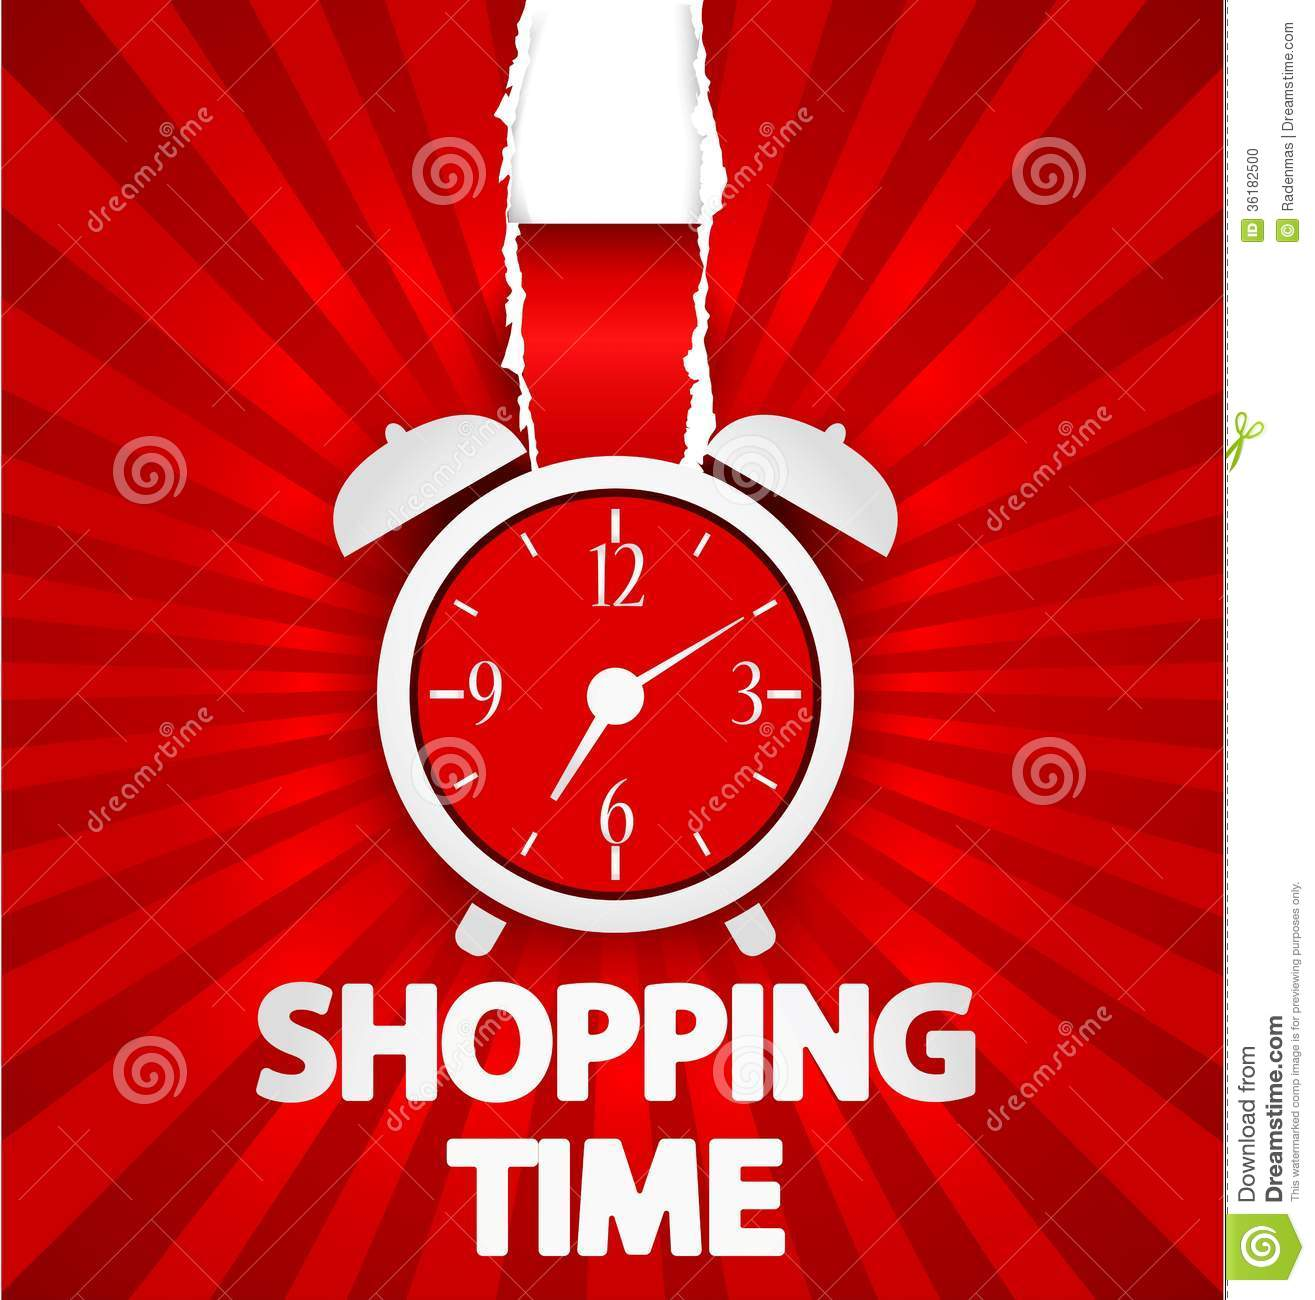 ... Time Poster Design With Alarm Clock Stock Photo - Image: 36182500